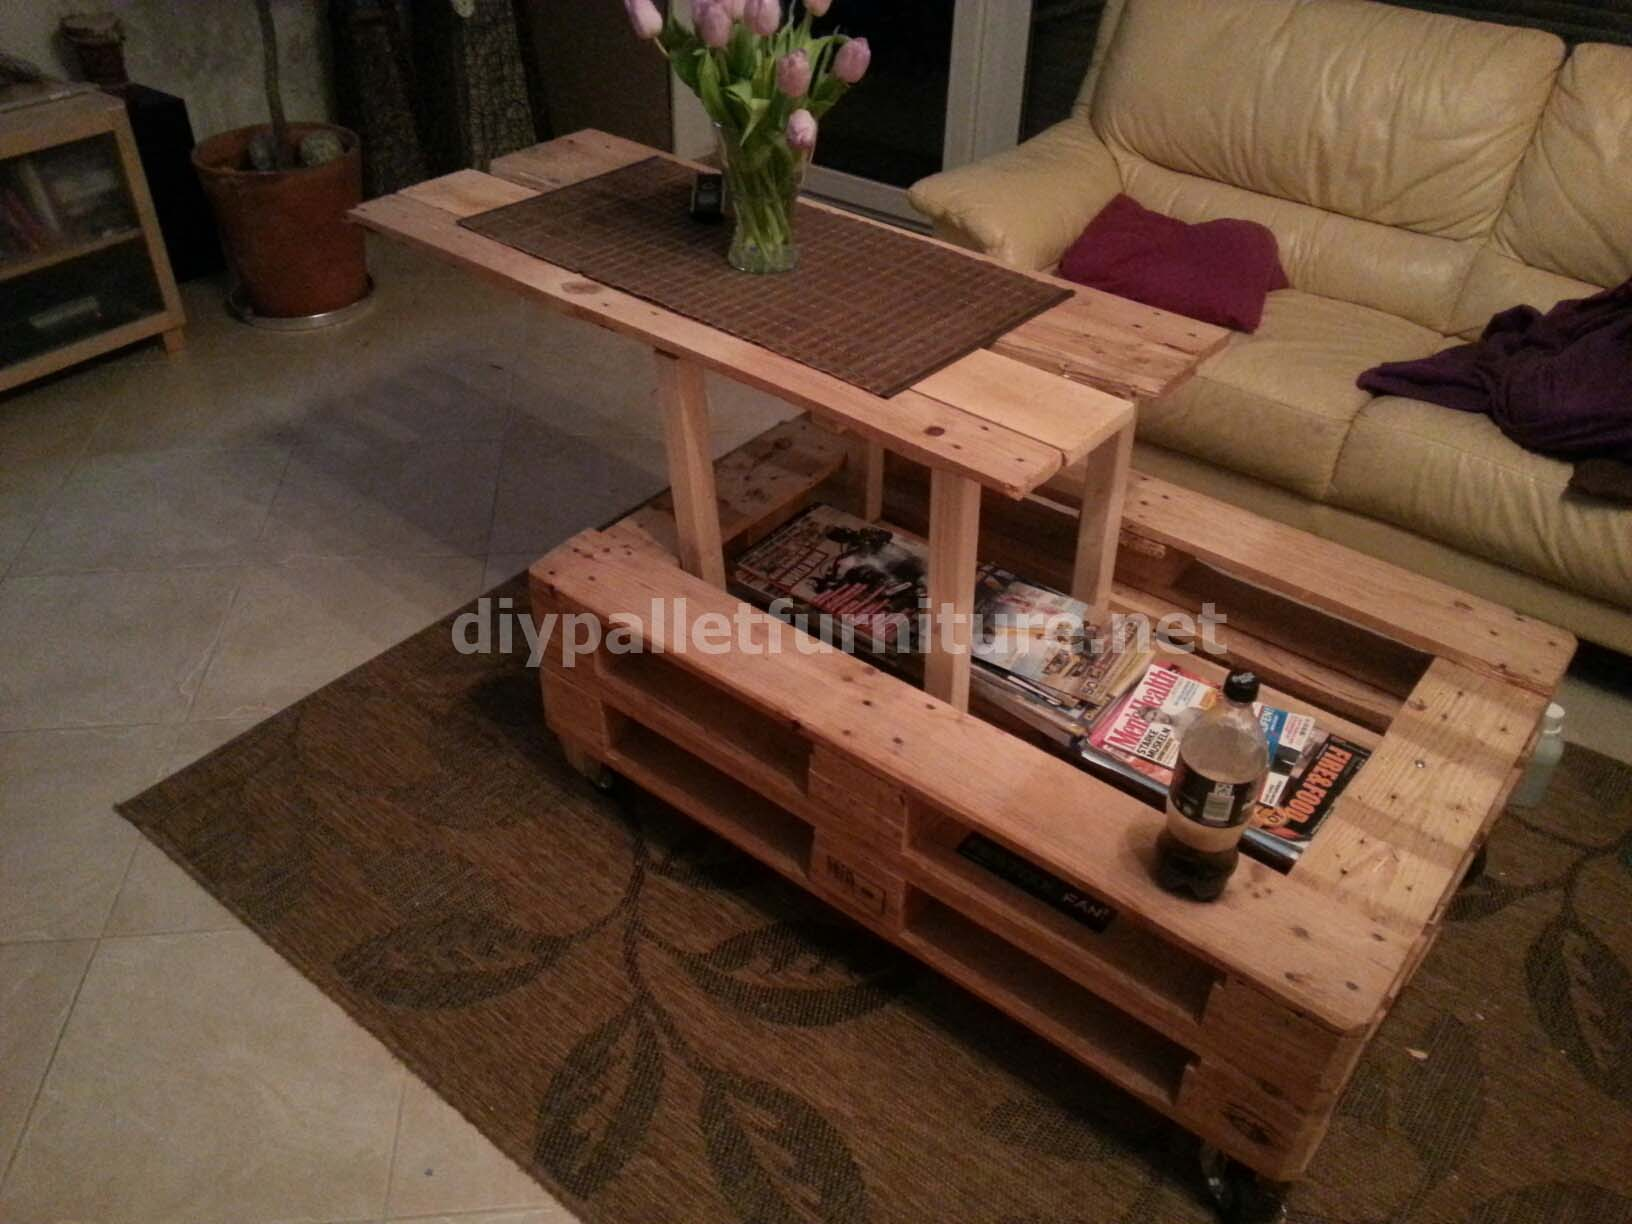 Pneumatic Pallet TableDIY Furniture DIY